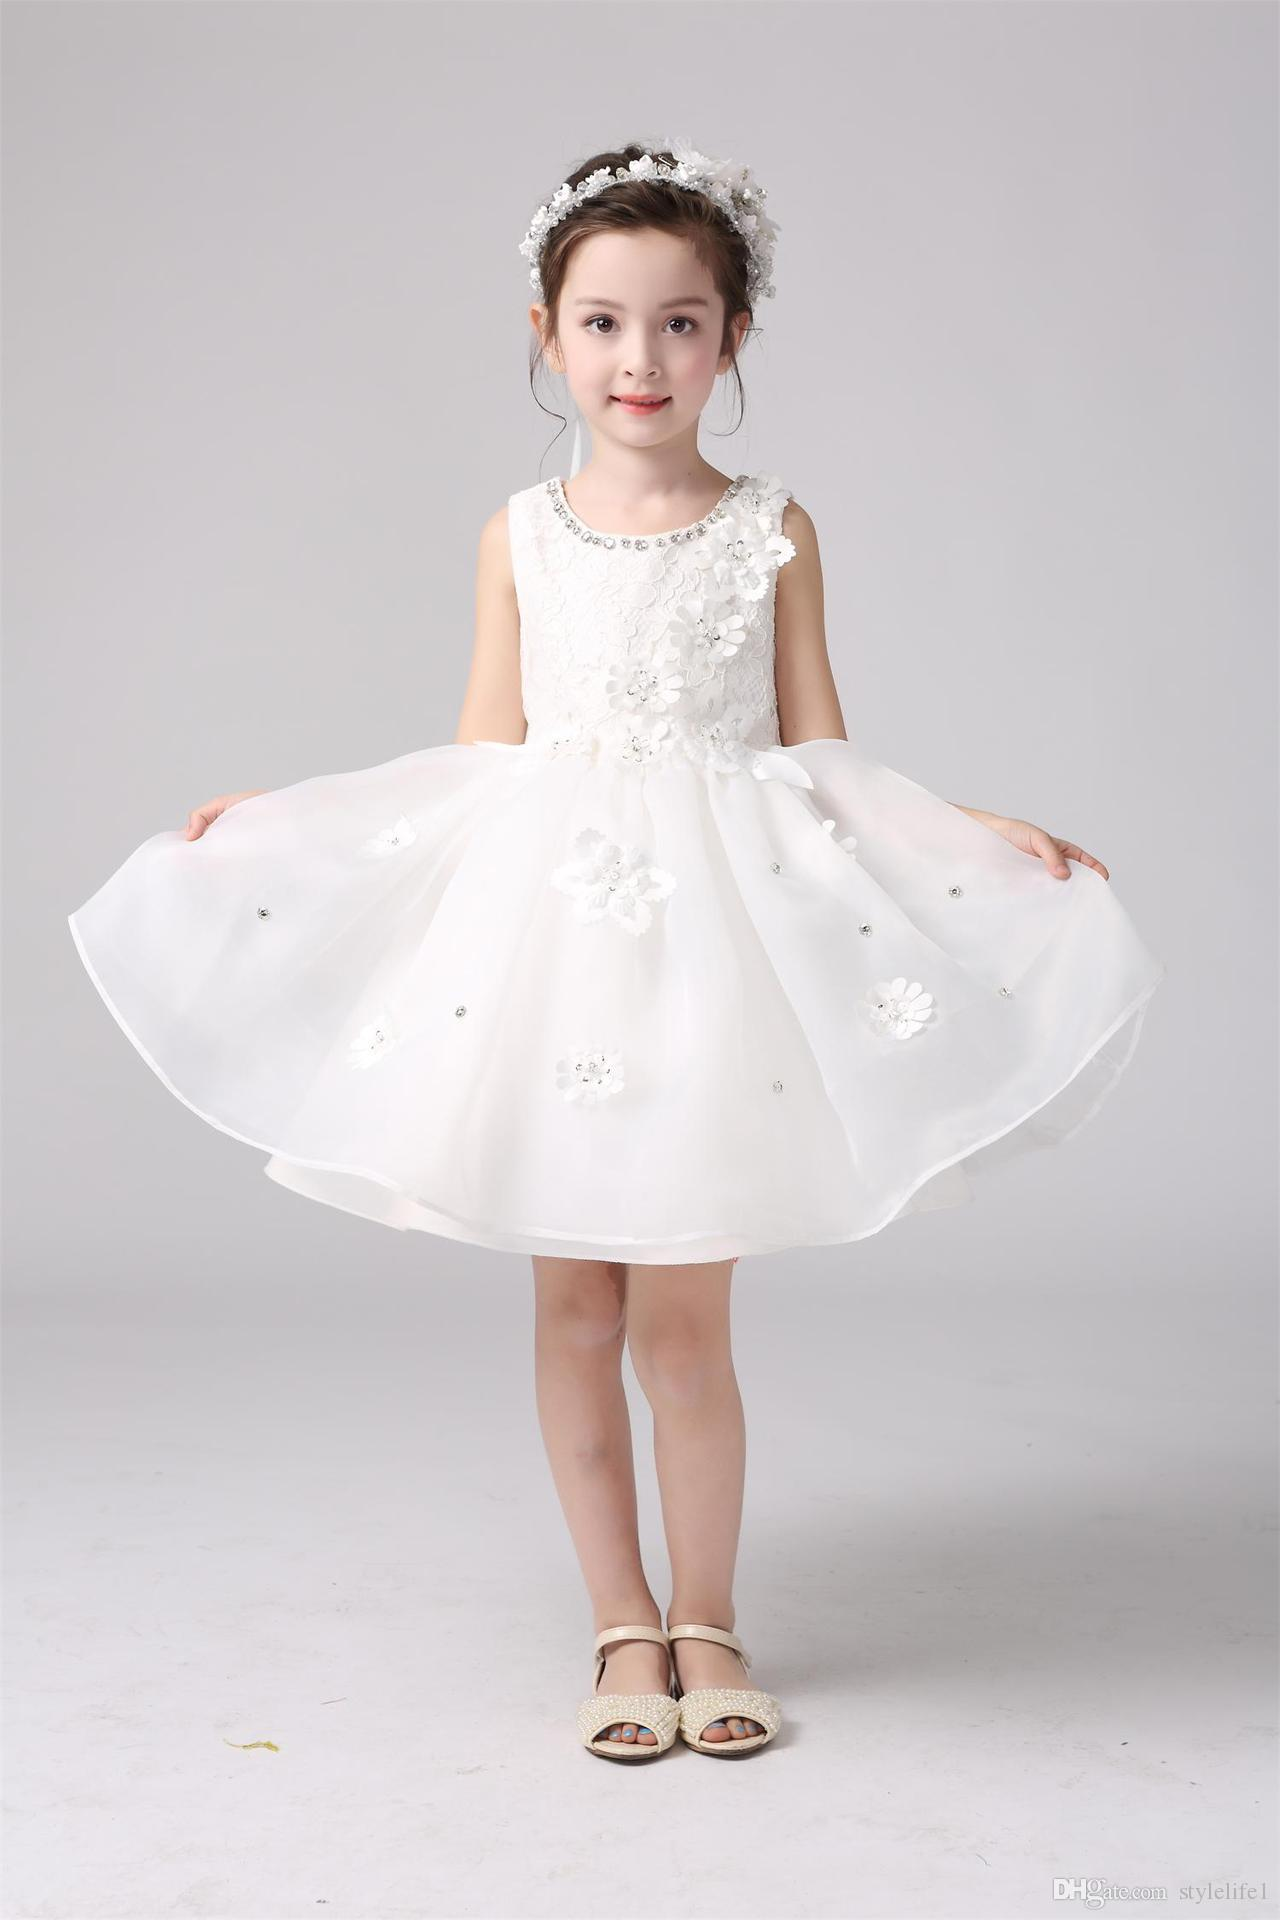 2016 new design childrens clothing princess bridesmaid flower girl 2016 new design childrens clothing princess bridesmaid flower girl dresses wedding party skirts for children girls lace dress for birthday wedding dresses ombrellifo Image collections